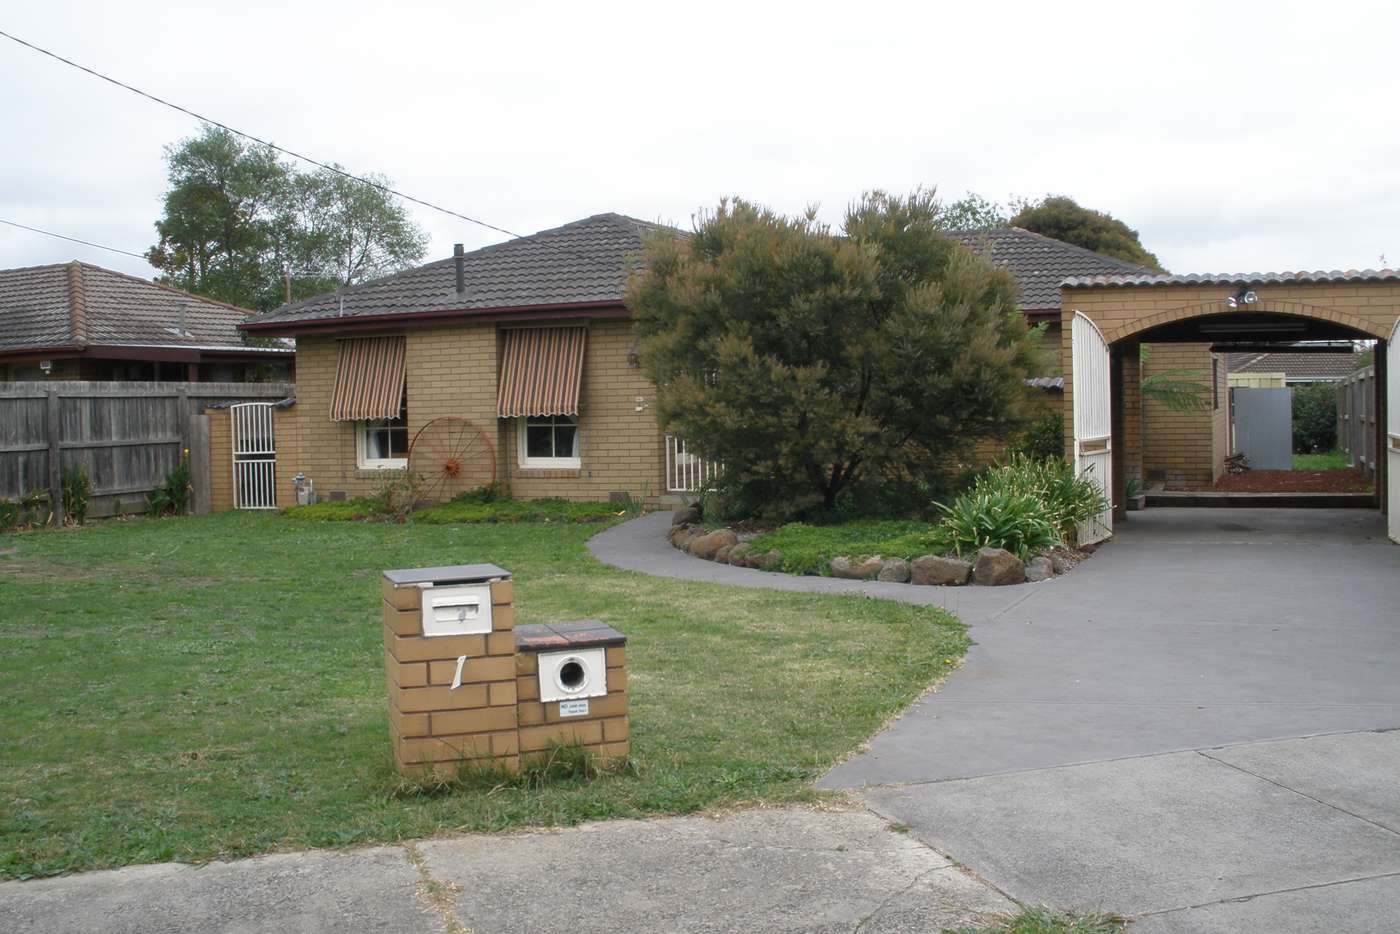 Main view of Homely house listing, 1 Aubyn Court, Mulgrave VIC 3170